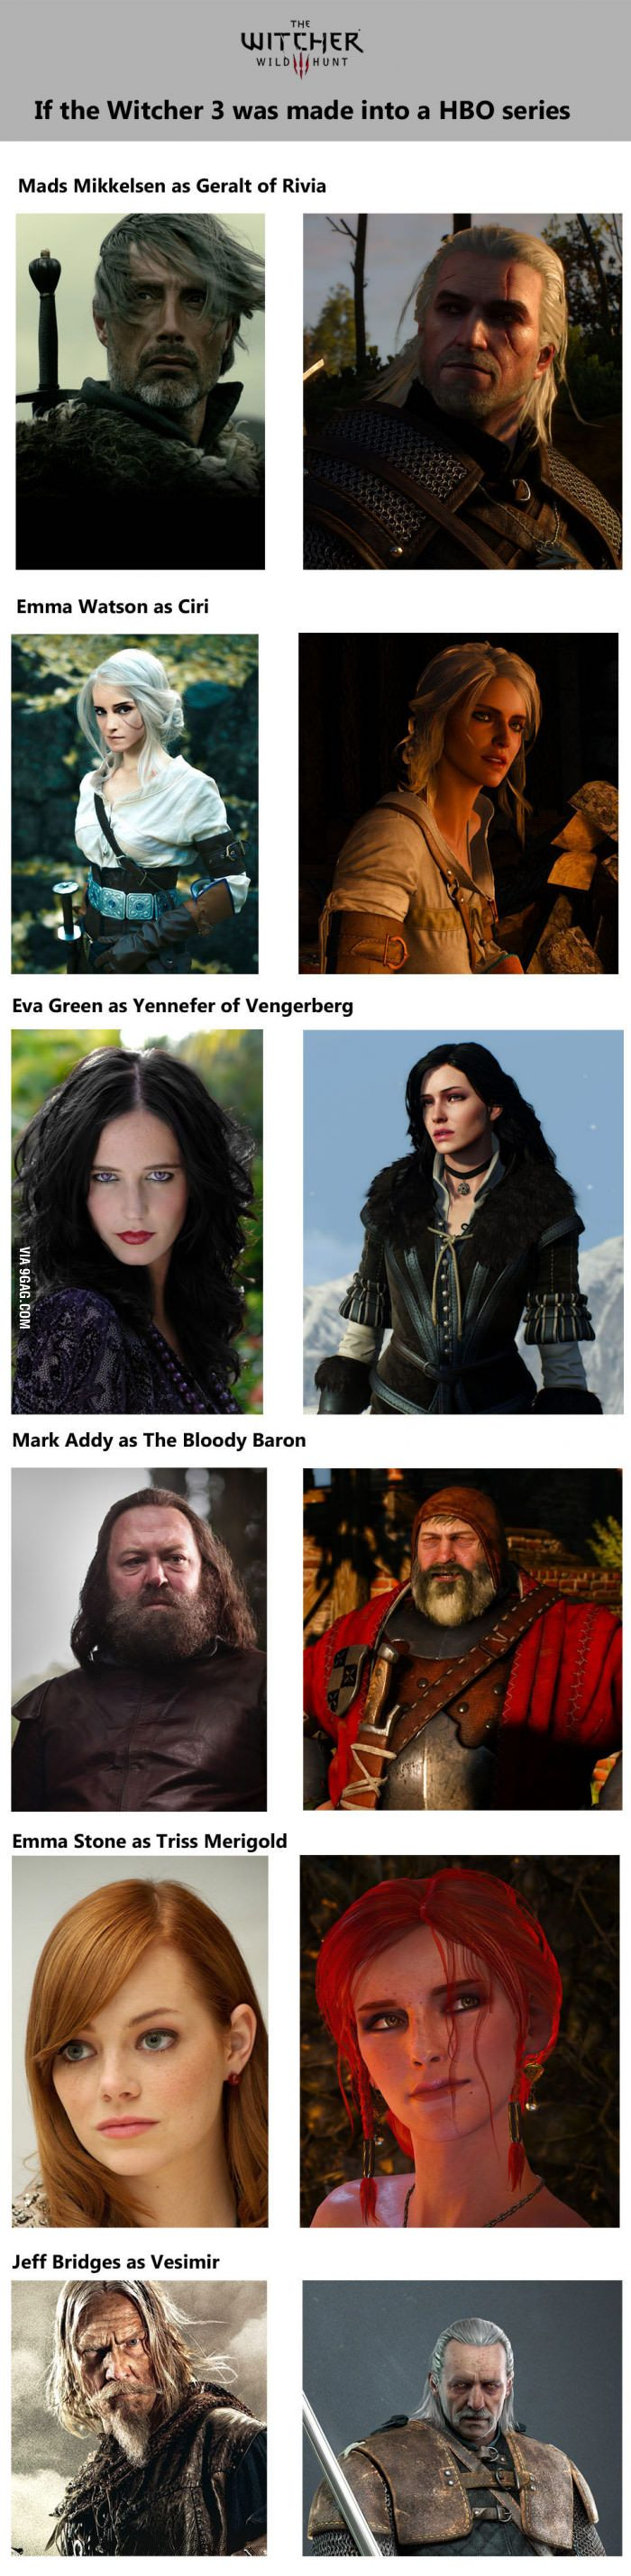 Viral pictures of the day: If the Witcher game series was turned into a HBO series or movie